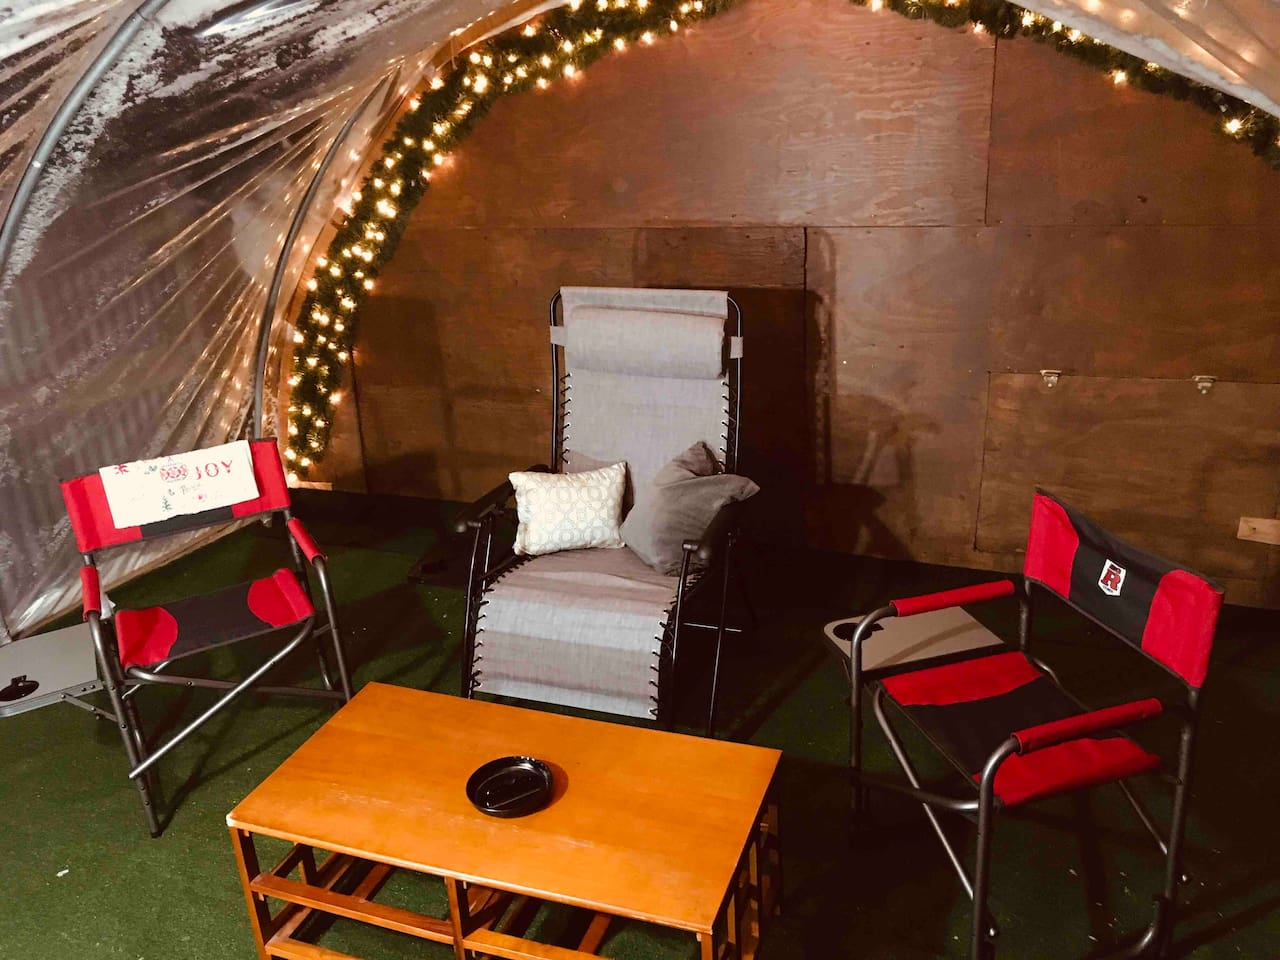 This is the new Green Room where guests can sit and relax out of the weather and smoke/drink/visit/relax in a private covered room (rules apply).